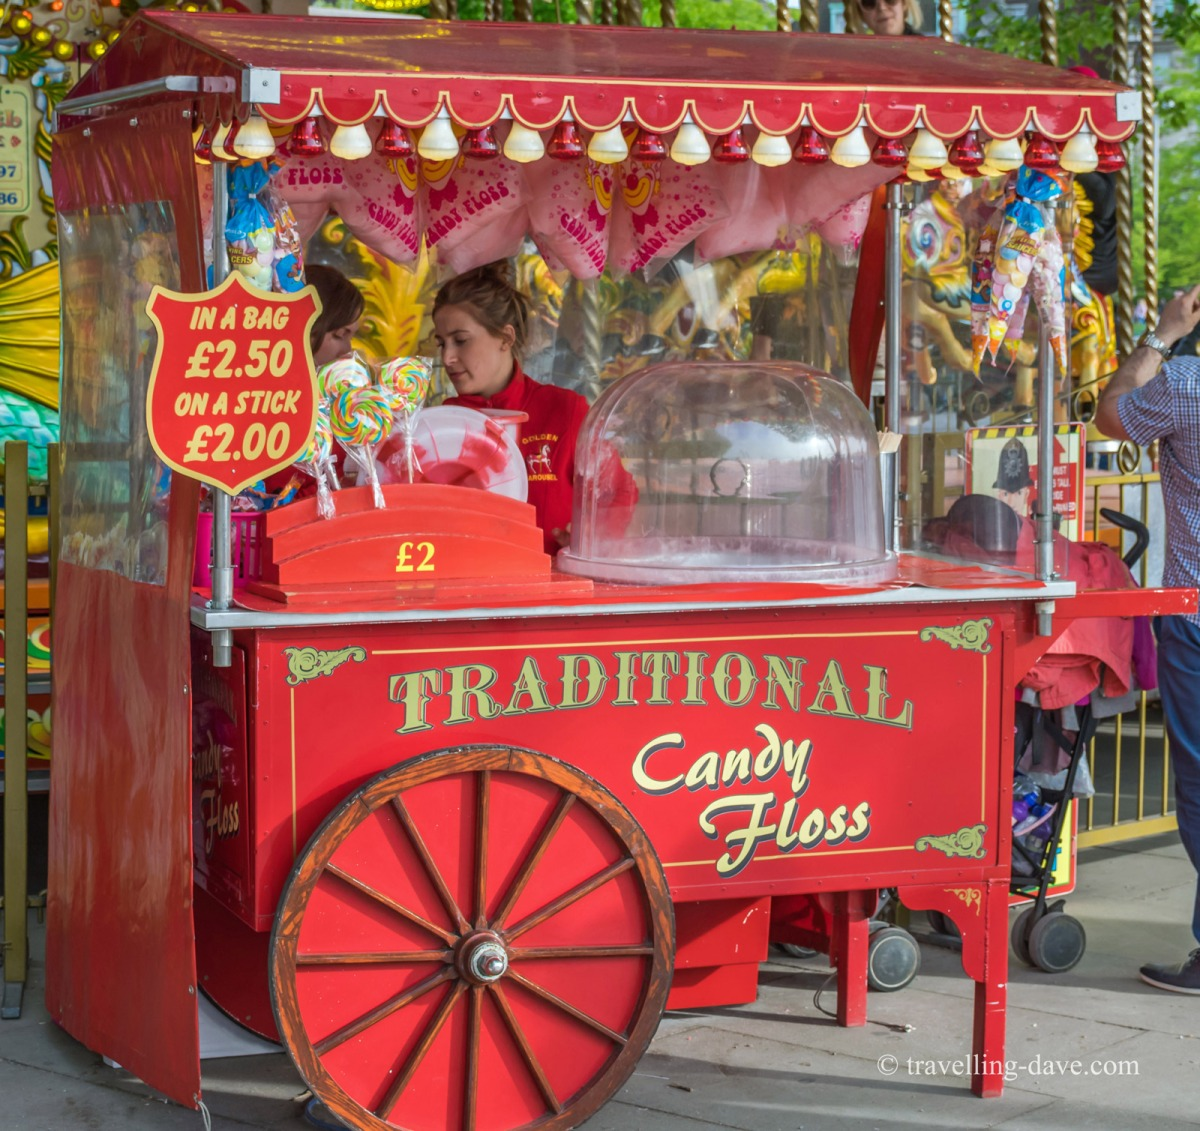 View of a red candy floss cart